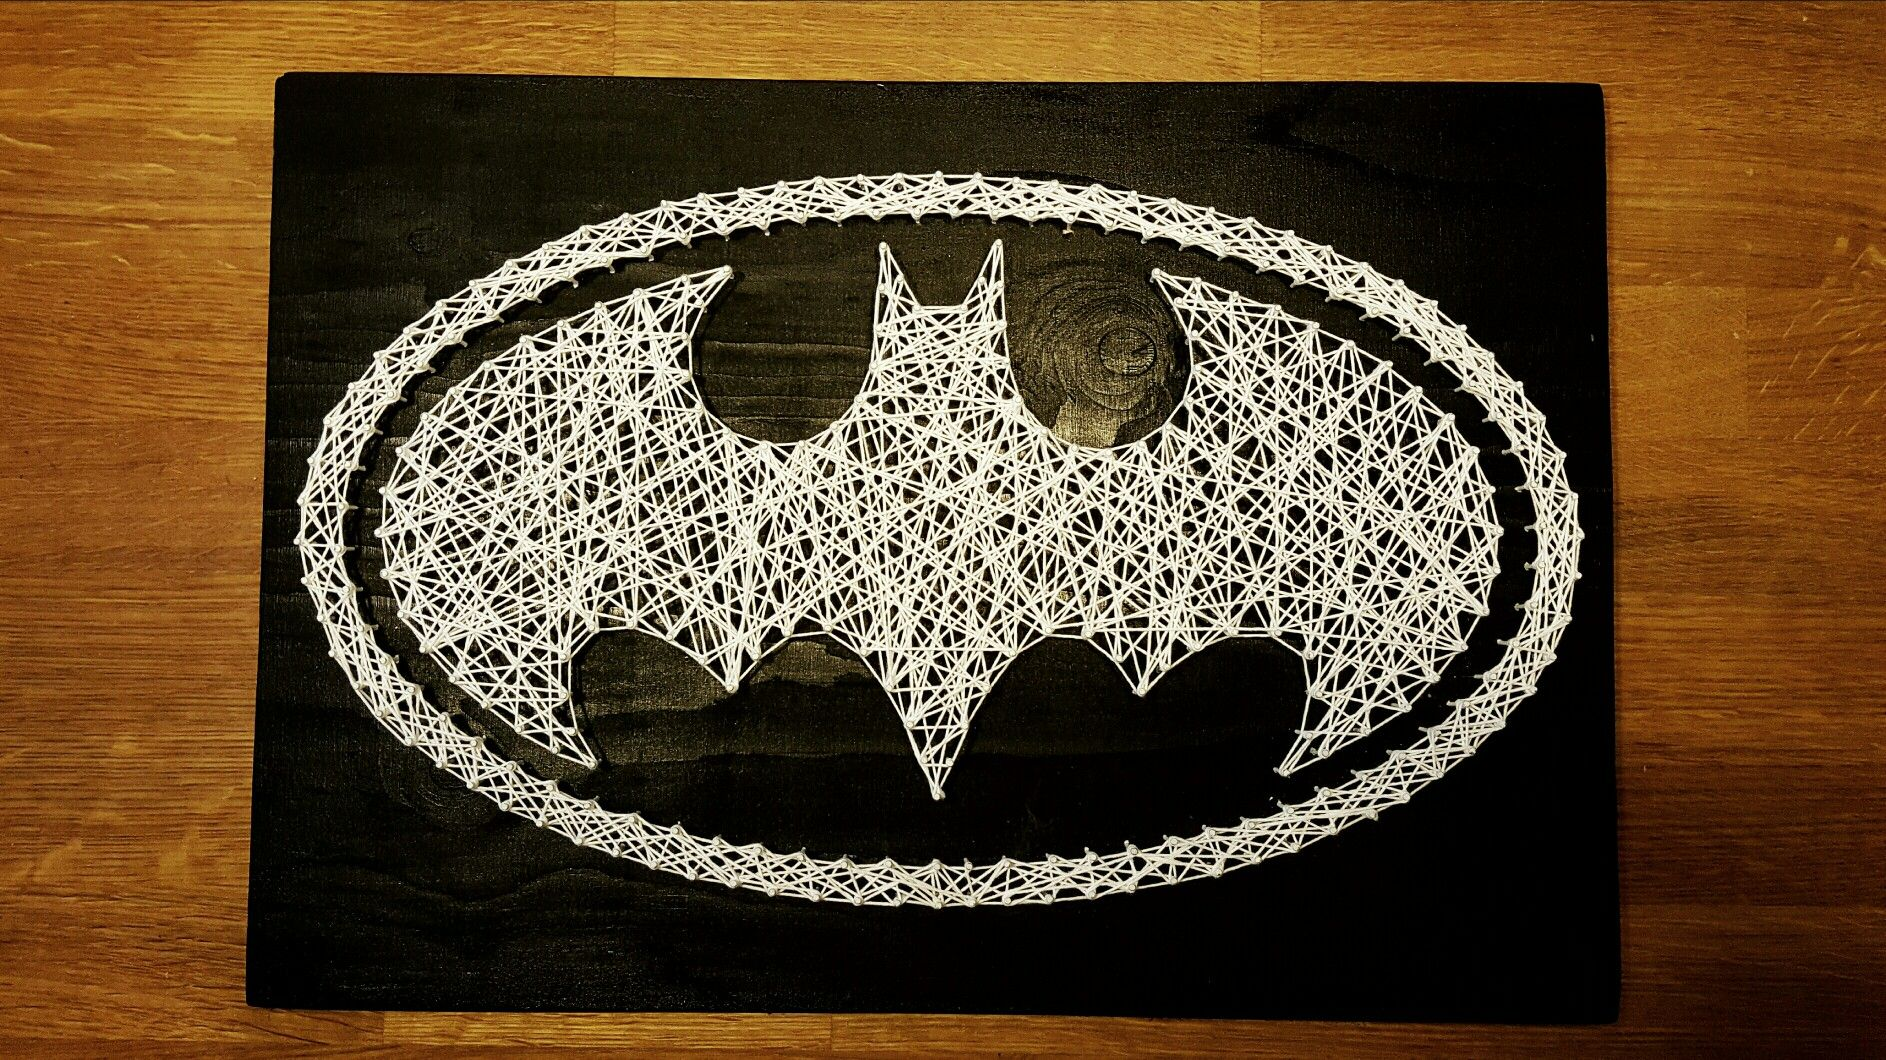 Diy Batman string art | DIY | Pinterest | Fadenbilder, Nagelbilder ...